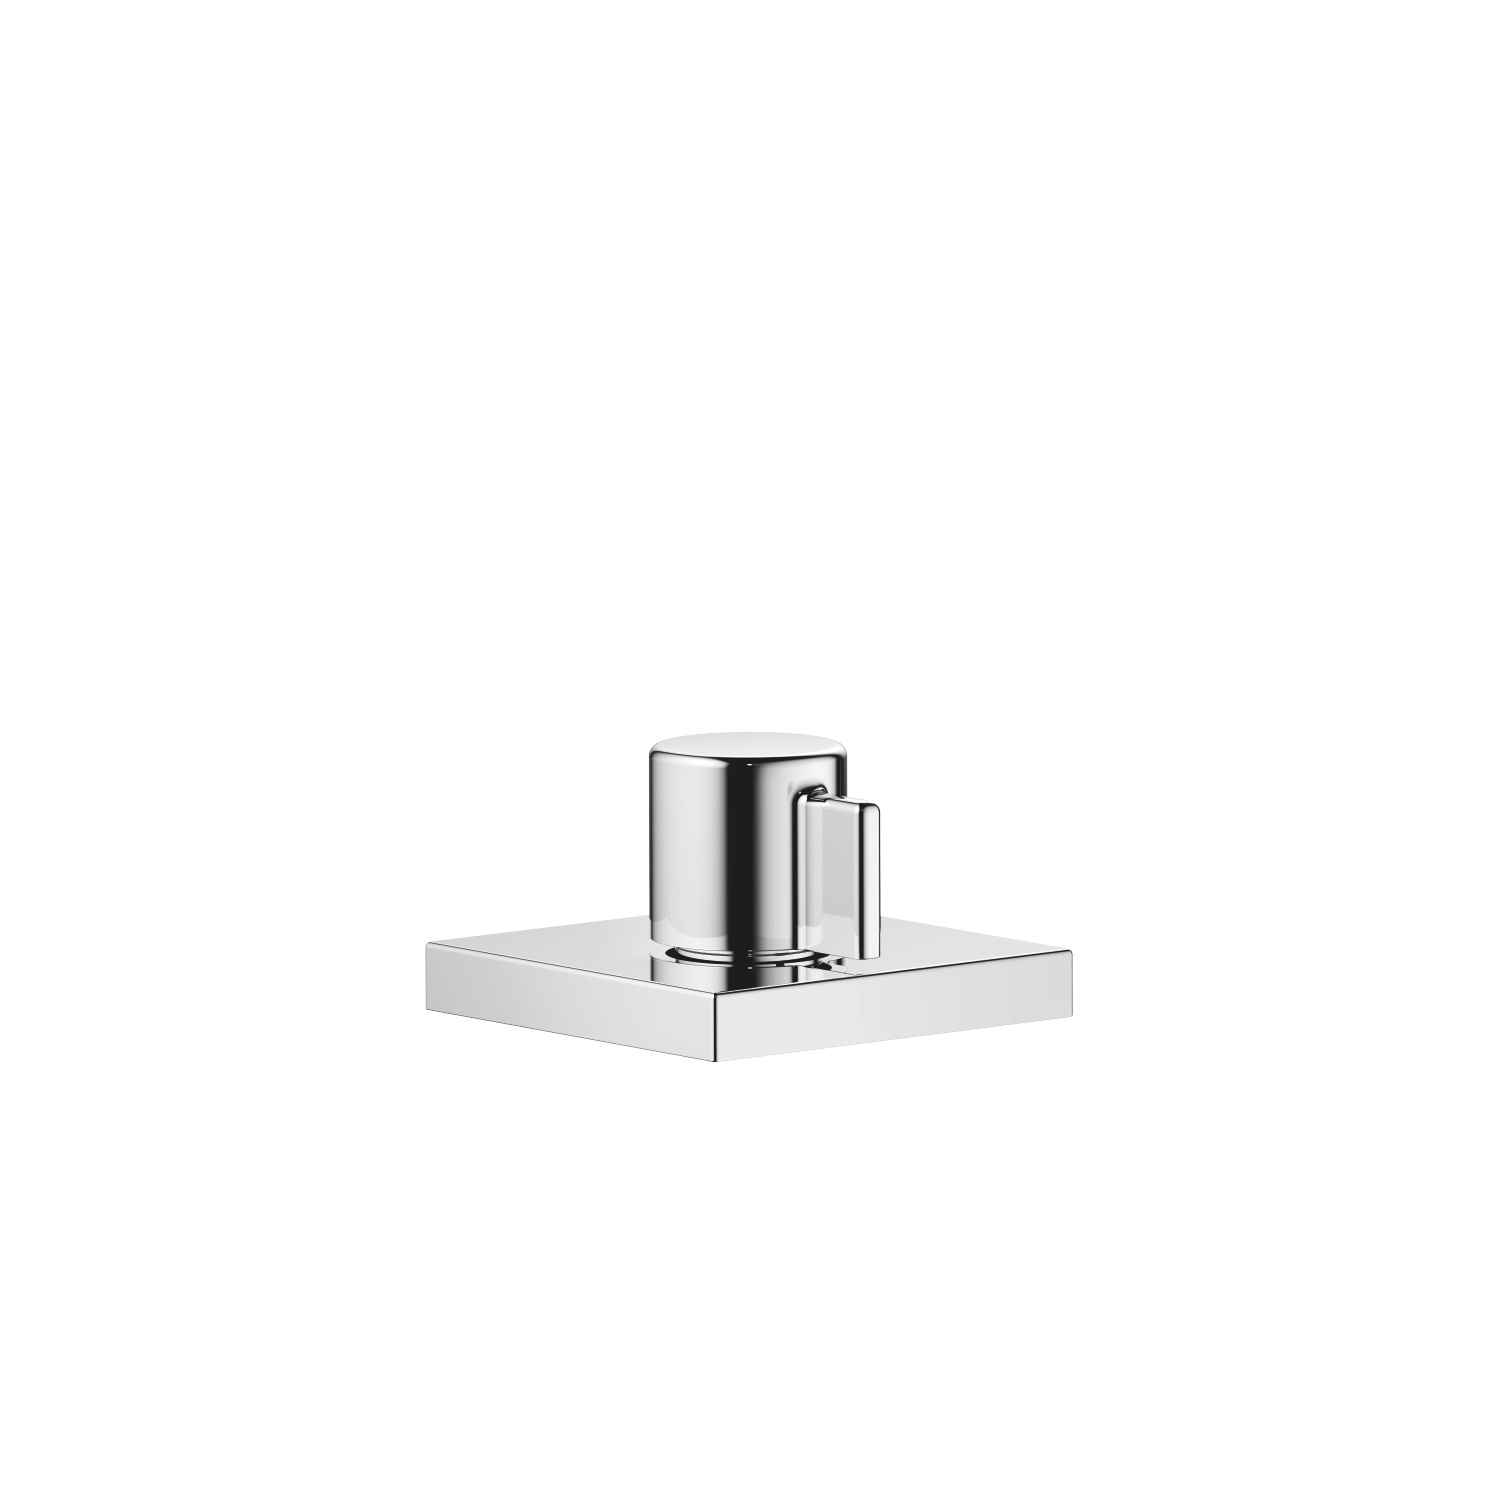 Two-way diverter - polished chrome - 29 125 985-00